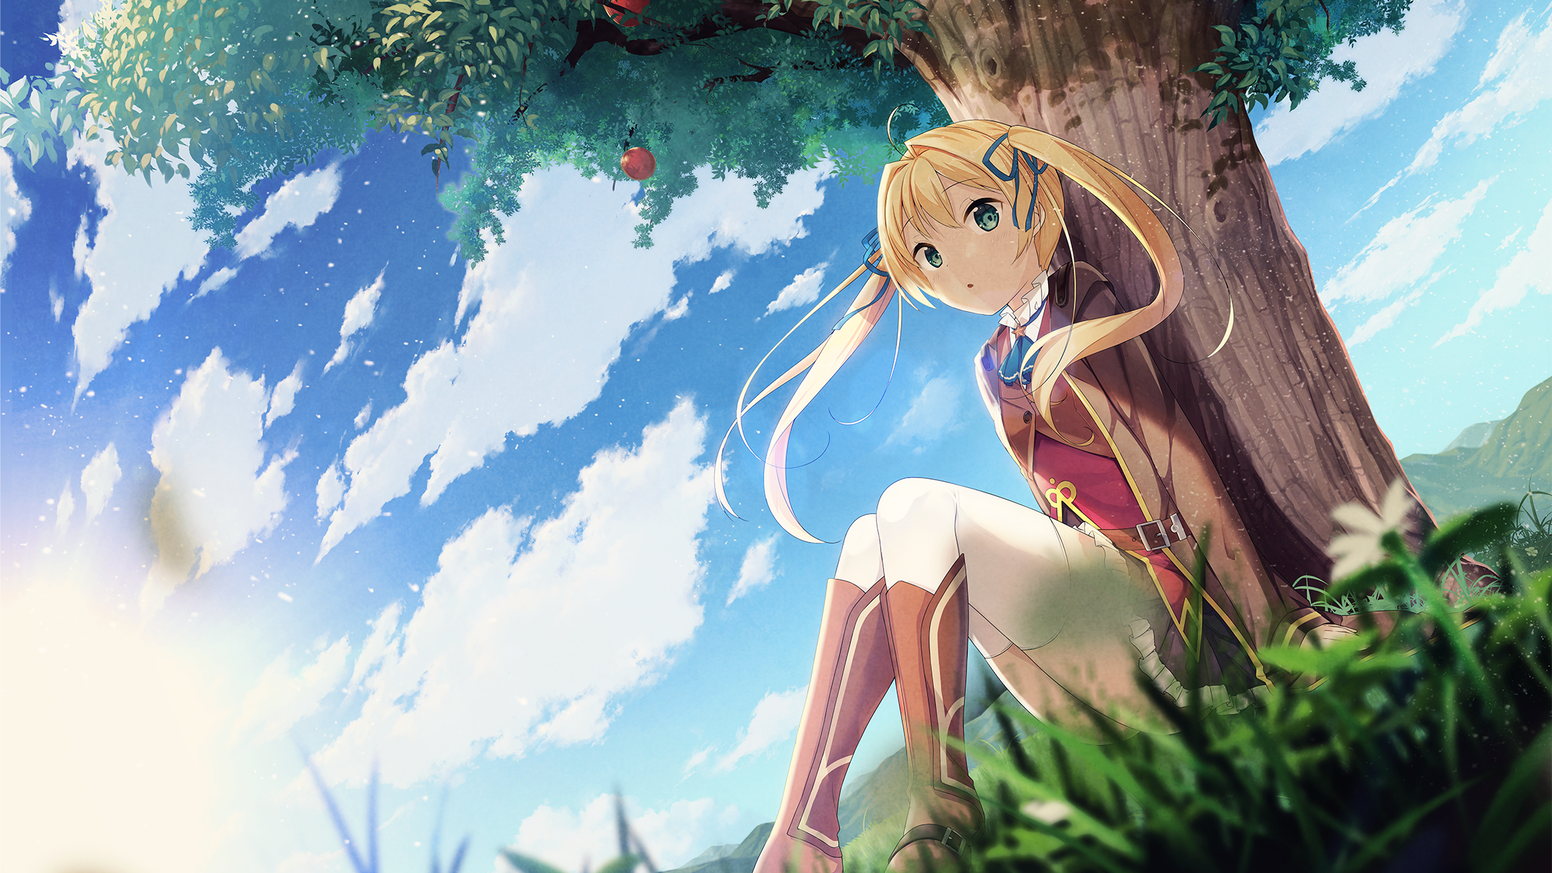 'Newton' was actually the pen name of a brilliant-minded girl!? Welcome to the time traveling visual novel, Newton and the Apple Tree.